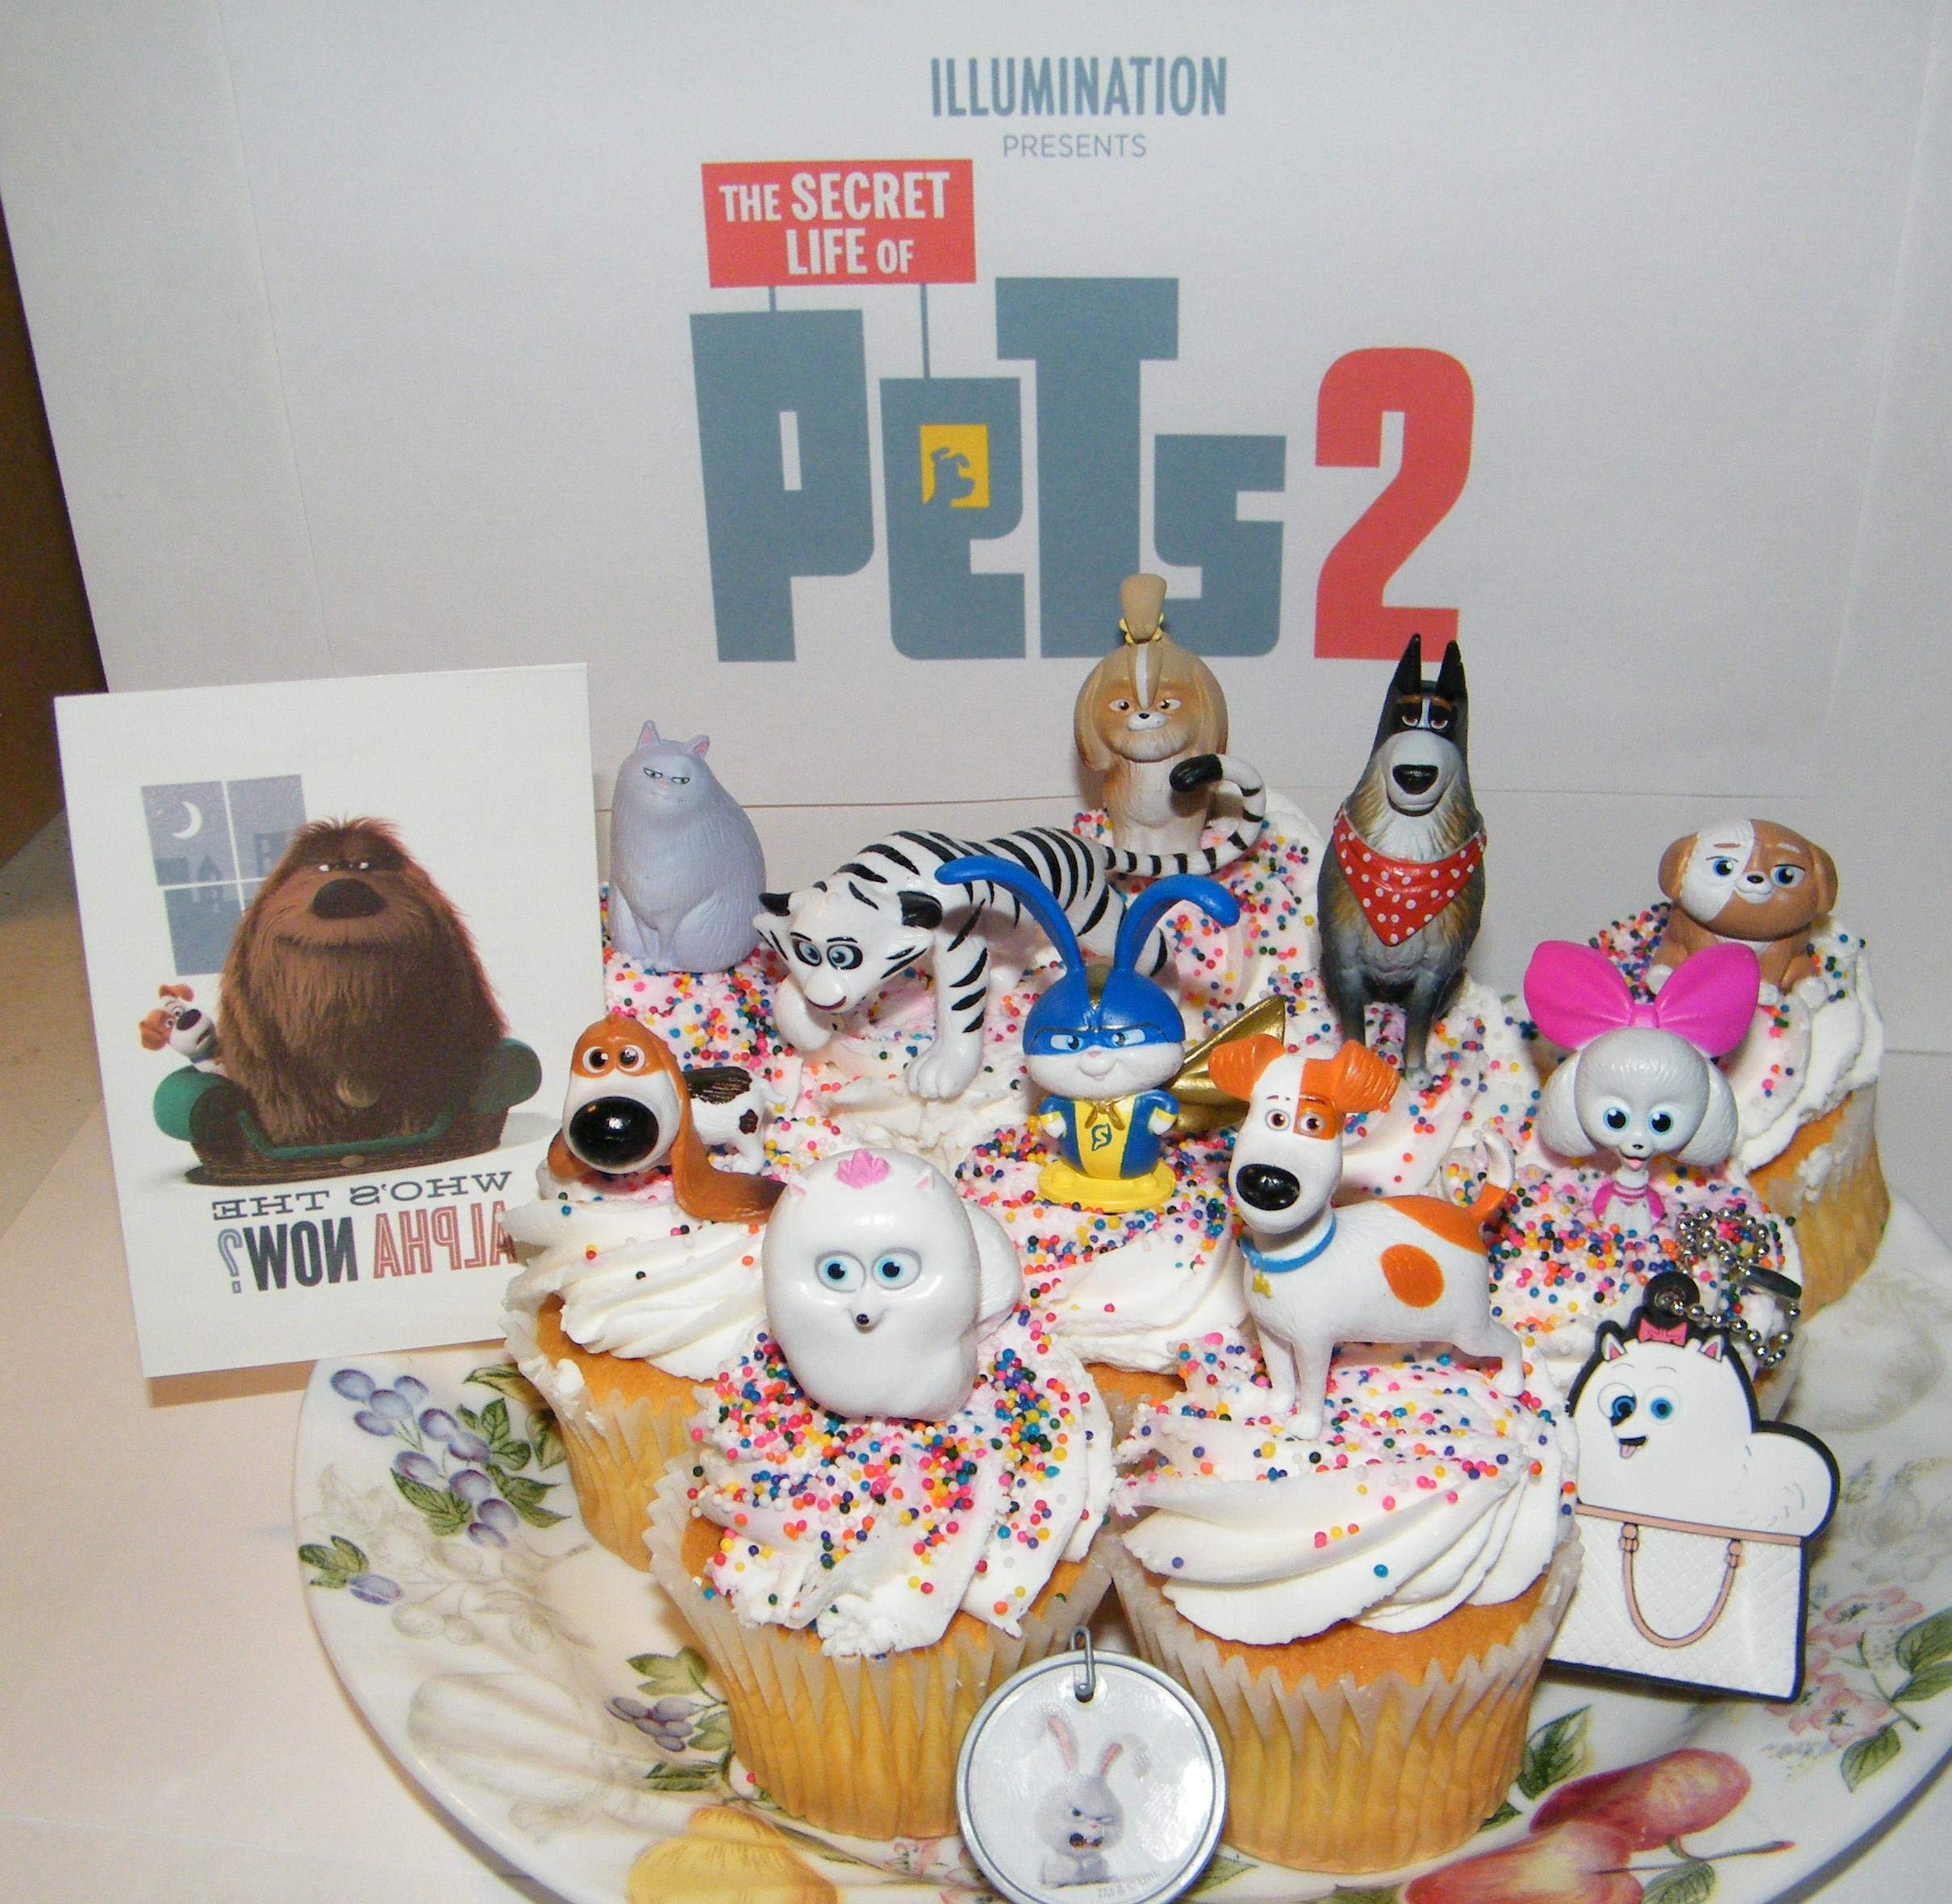 The Secret Life of Pets 2 Movie Deluxe Cake Toppers Cupcake Decorations 13 Set with 10 Figures, Pet Tattoo, Dog Tag Ring, Key chain with Original and All New Characters! by Party Fun